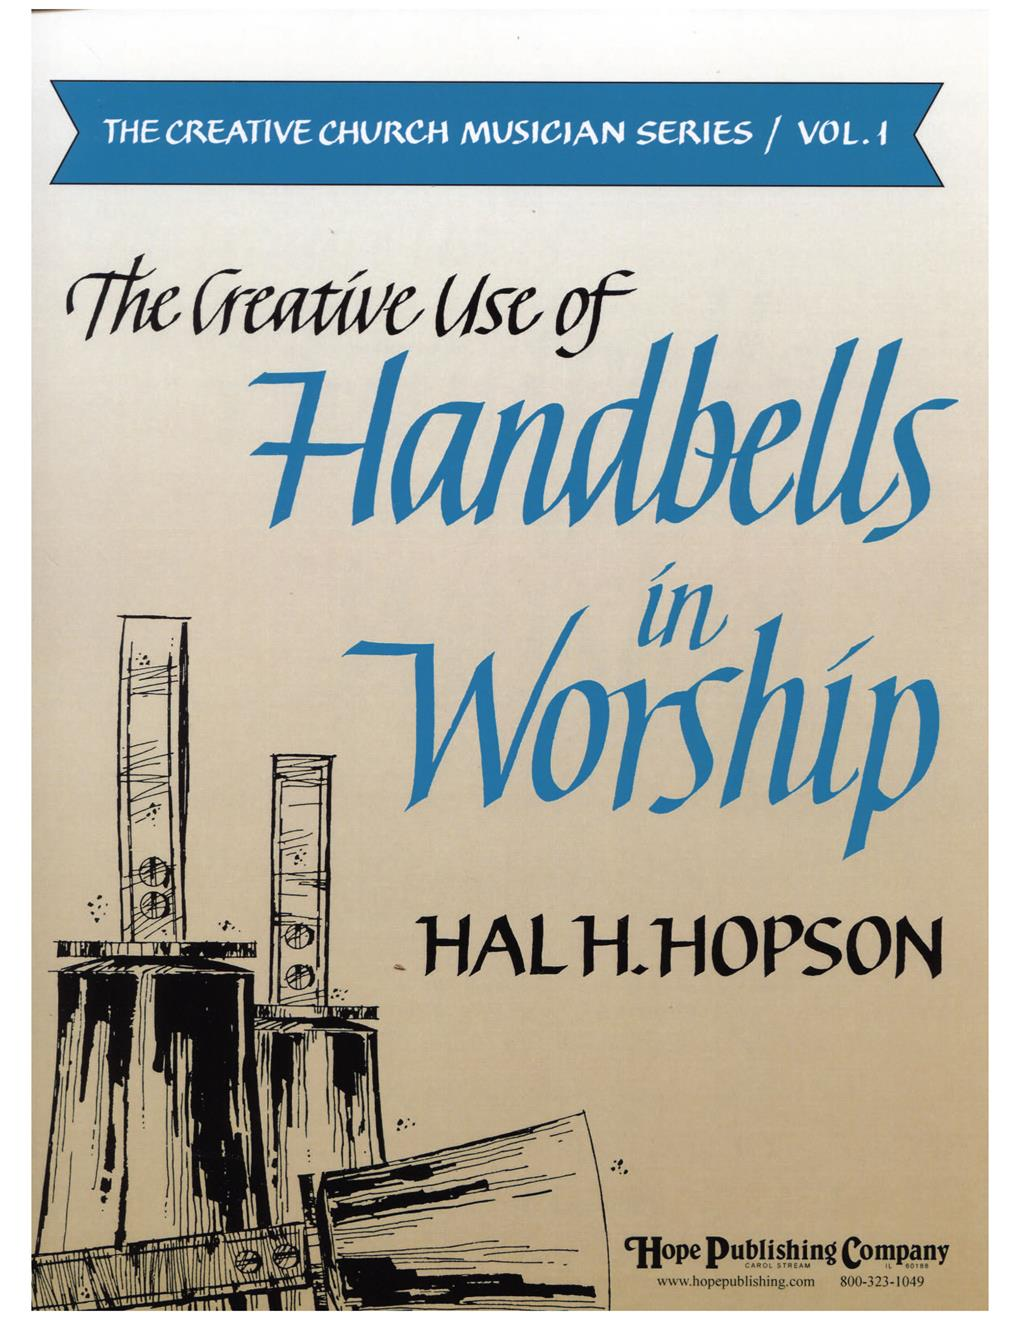 CREATIVE USE OF HANDBELLS IN WORSHIP (Handbell)